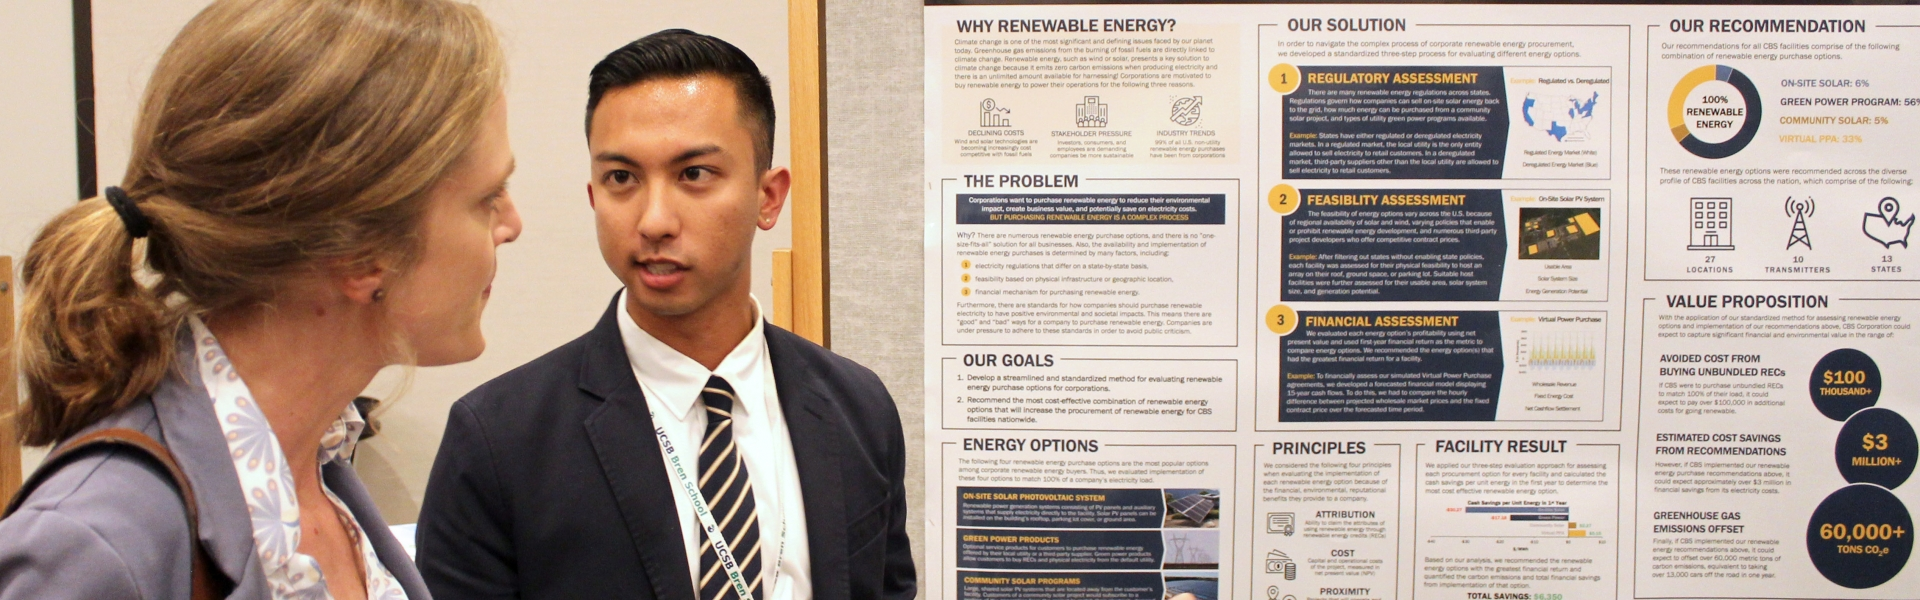 Student presents his research poster to a woman